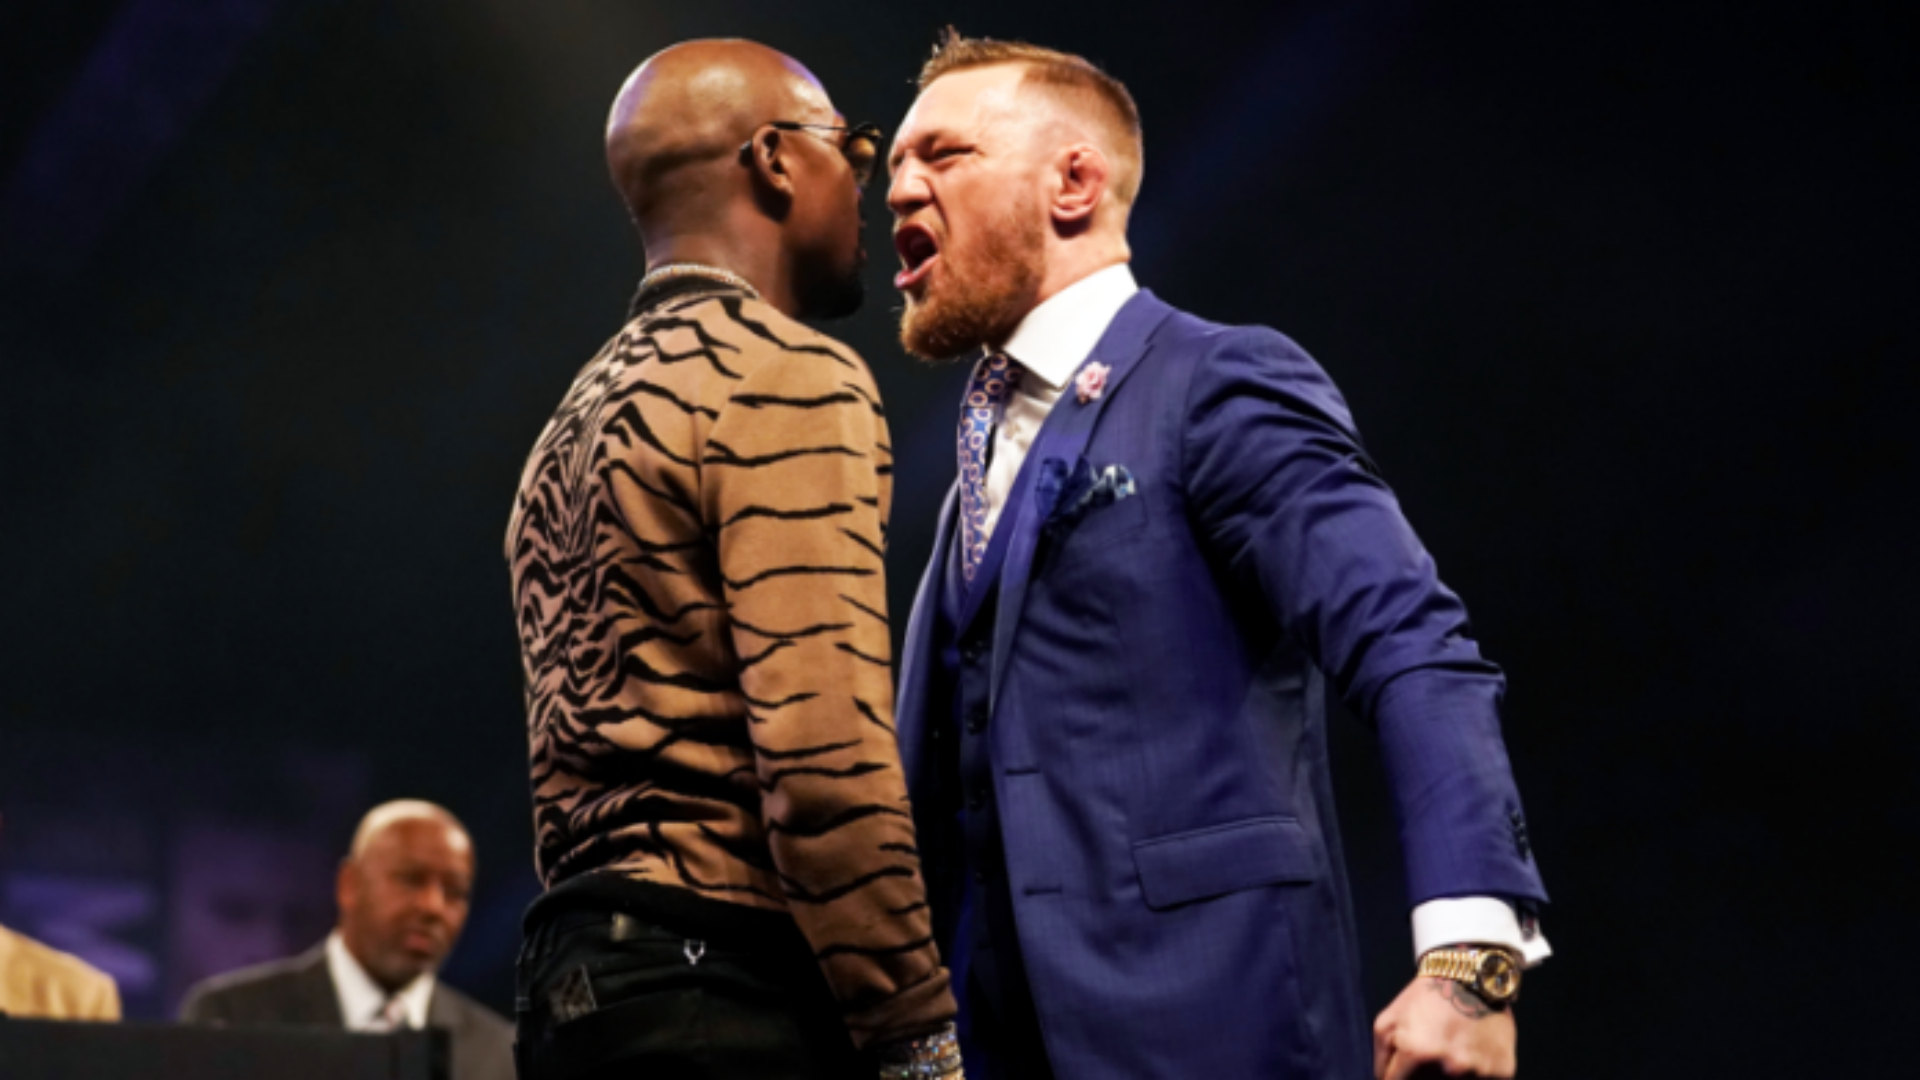 'Mini-Mayweather' Set To Fight 'Mini-McGregor'